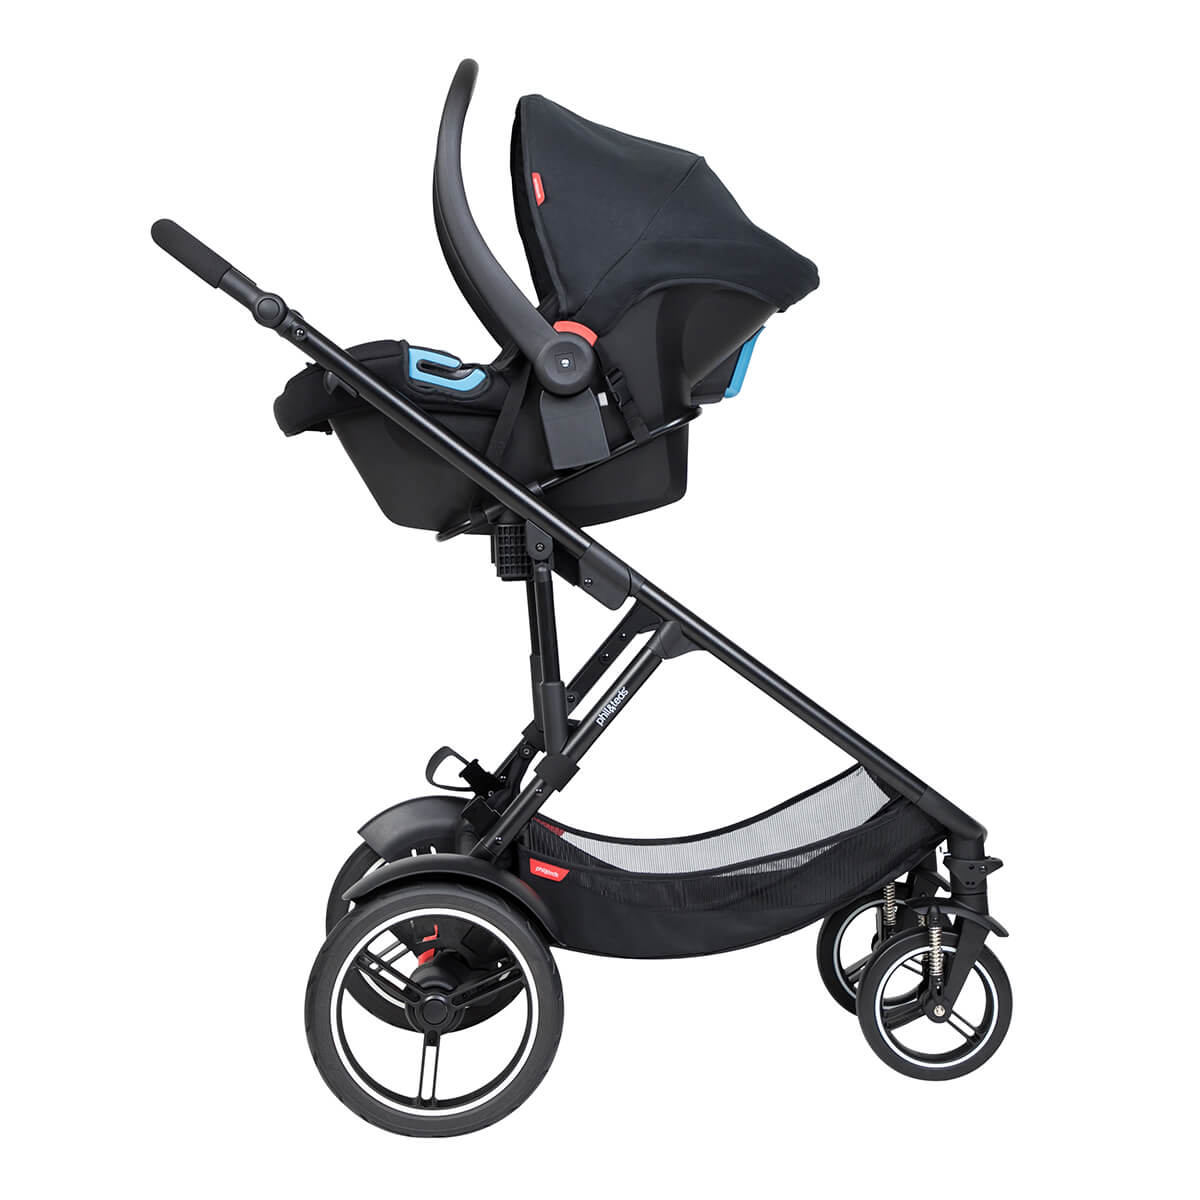 https://cdn.accentuate.io/4509867376737/19793938874538/philteds-voyager-buggy-with-travel-system-in-parent-facing-mode-v1626485357268.jpg?1200x1200